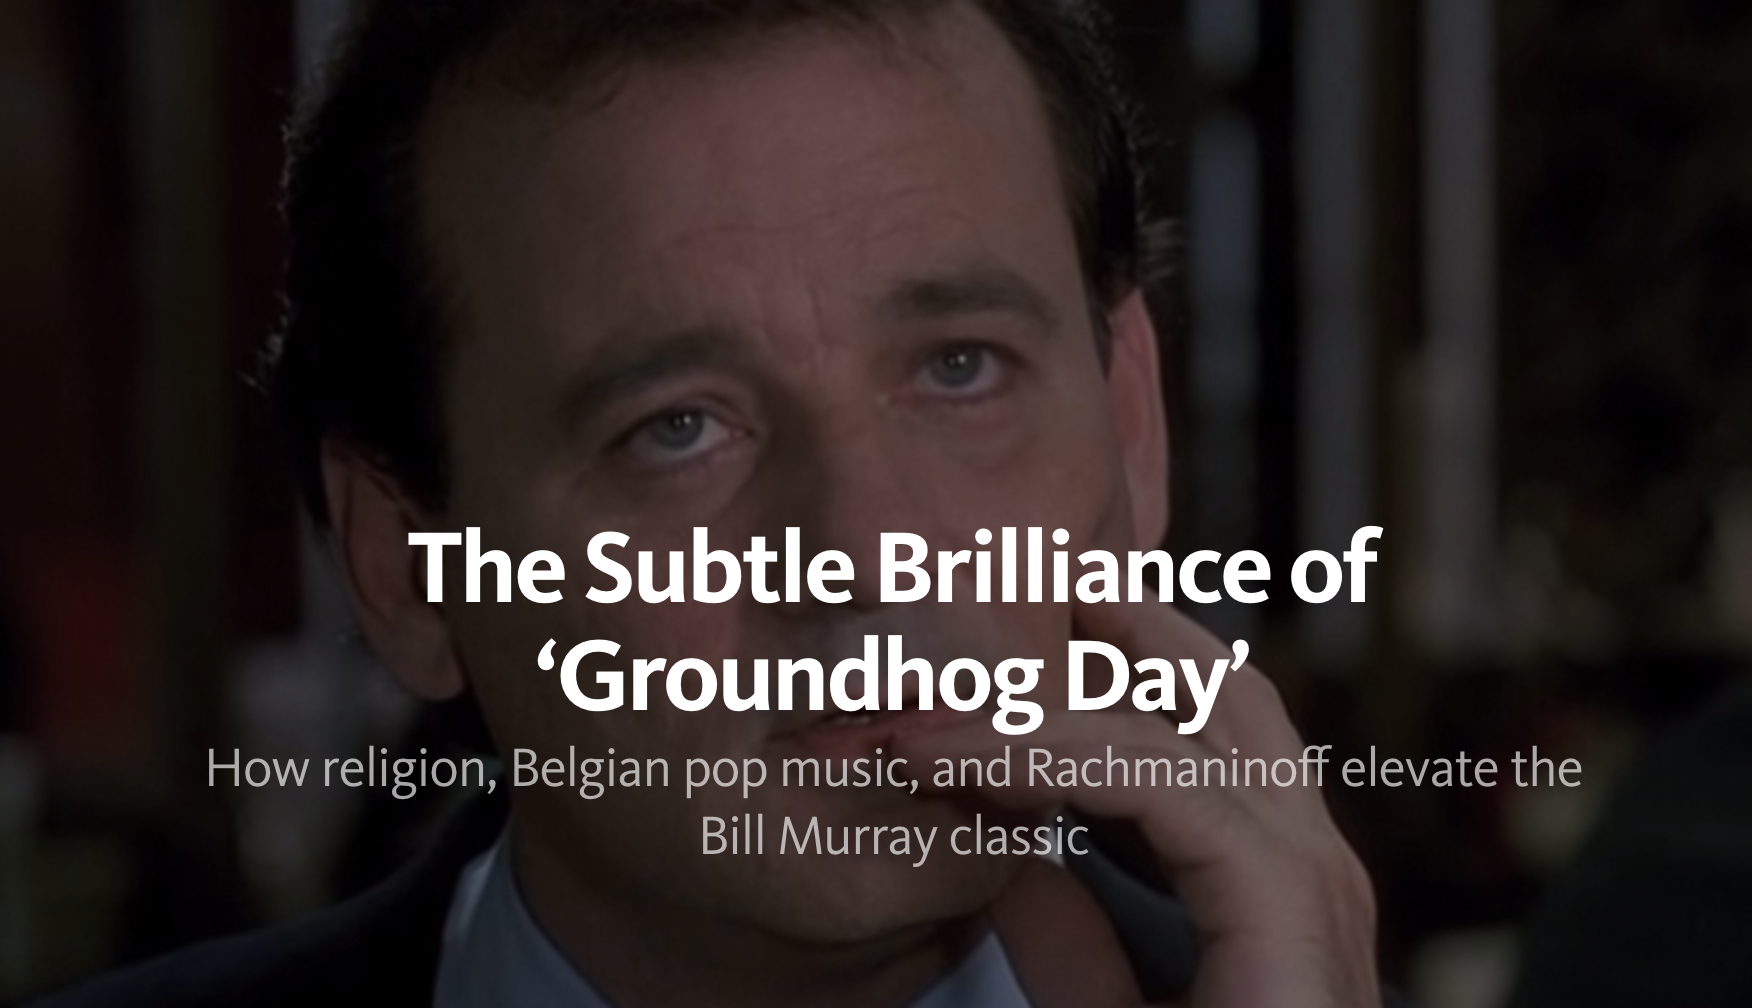 The Subtle Brilliance of 'Groundhog Day'